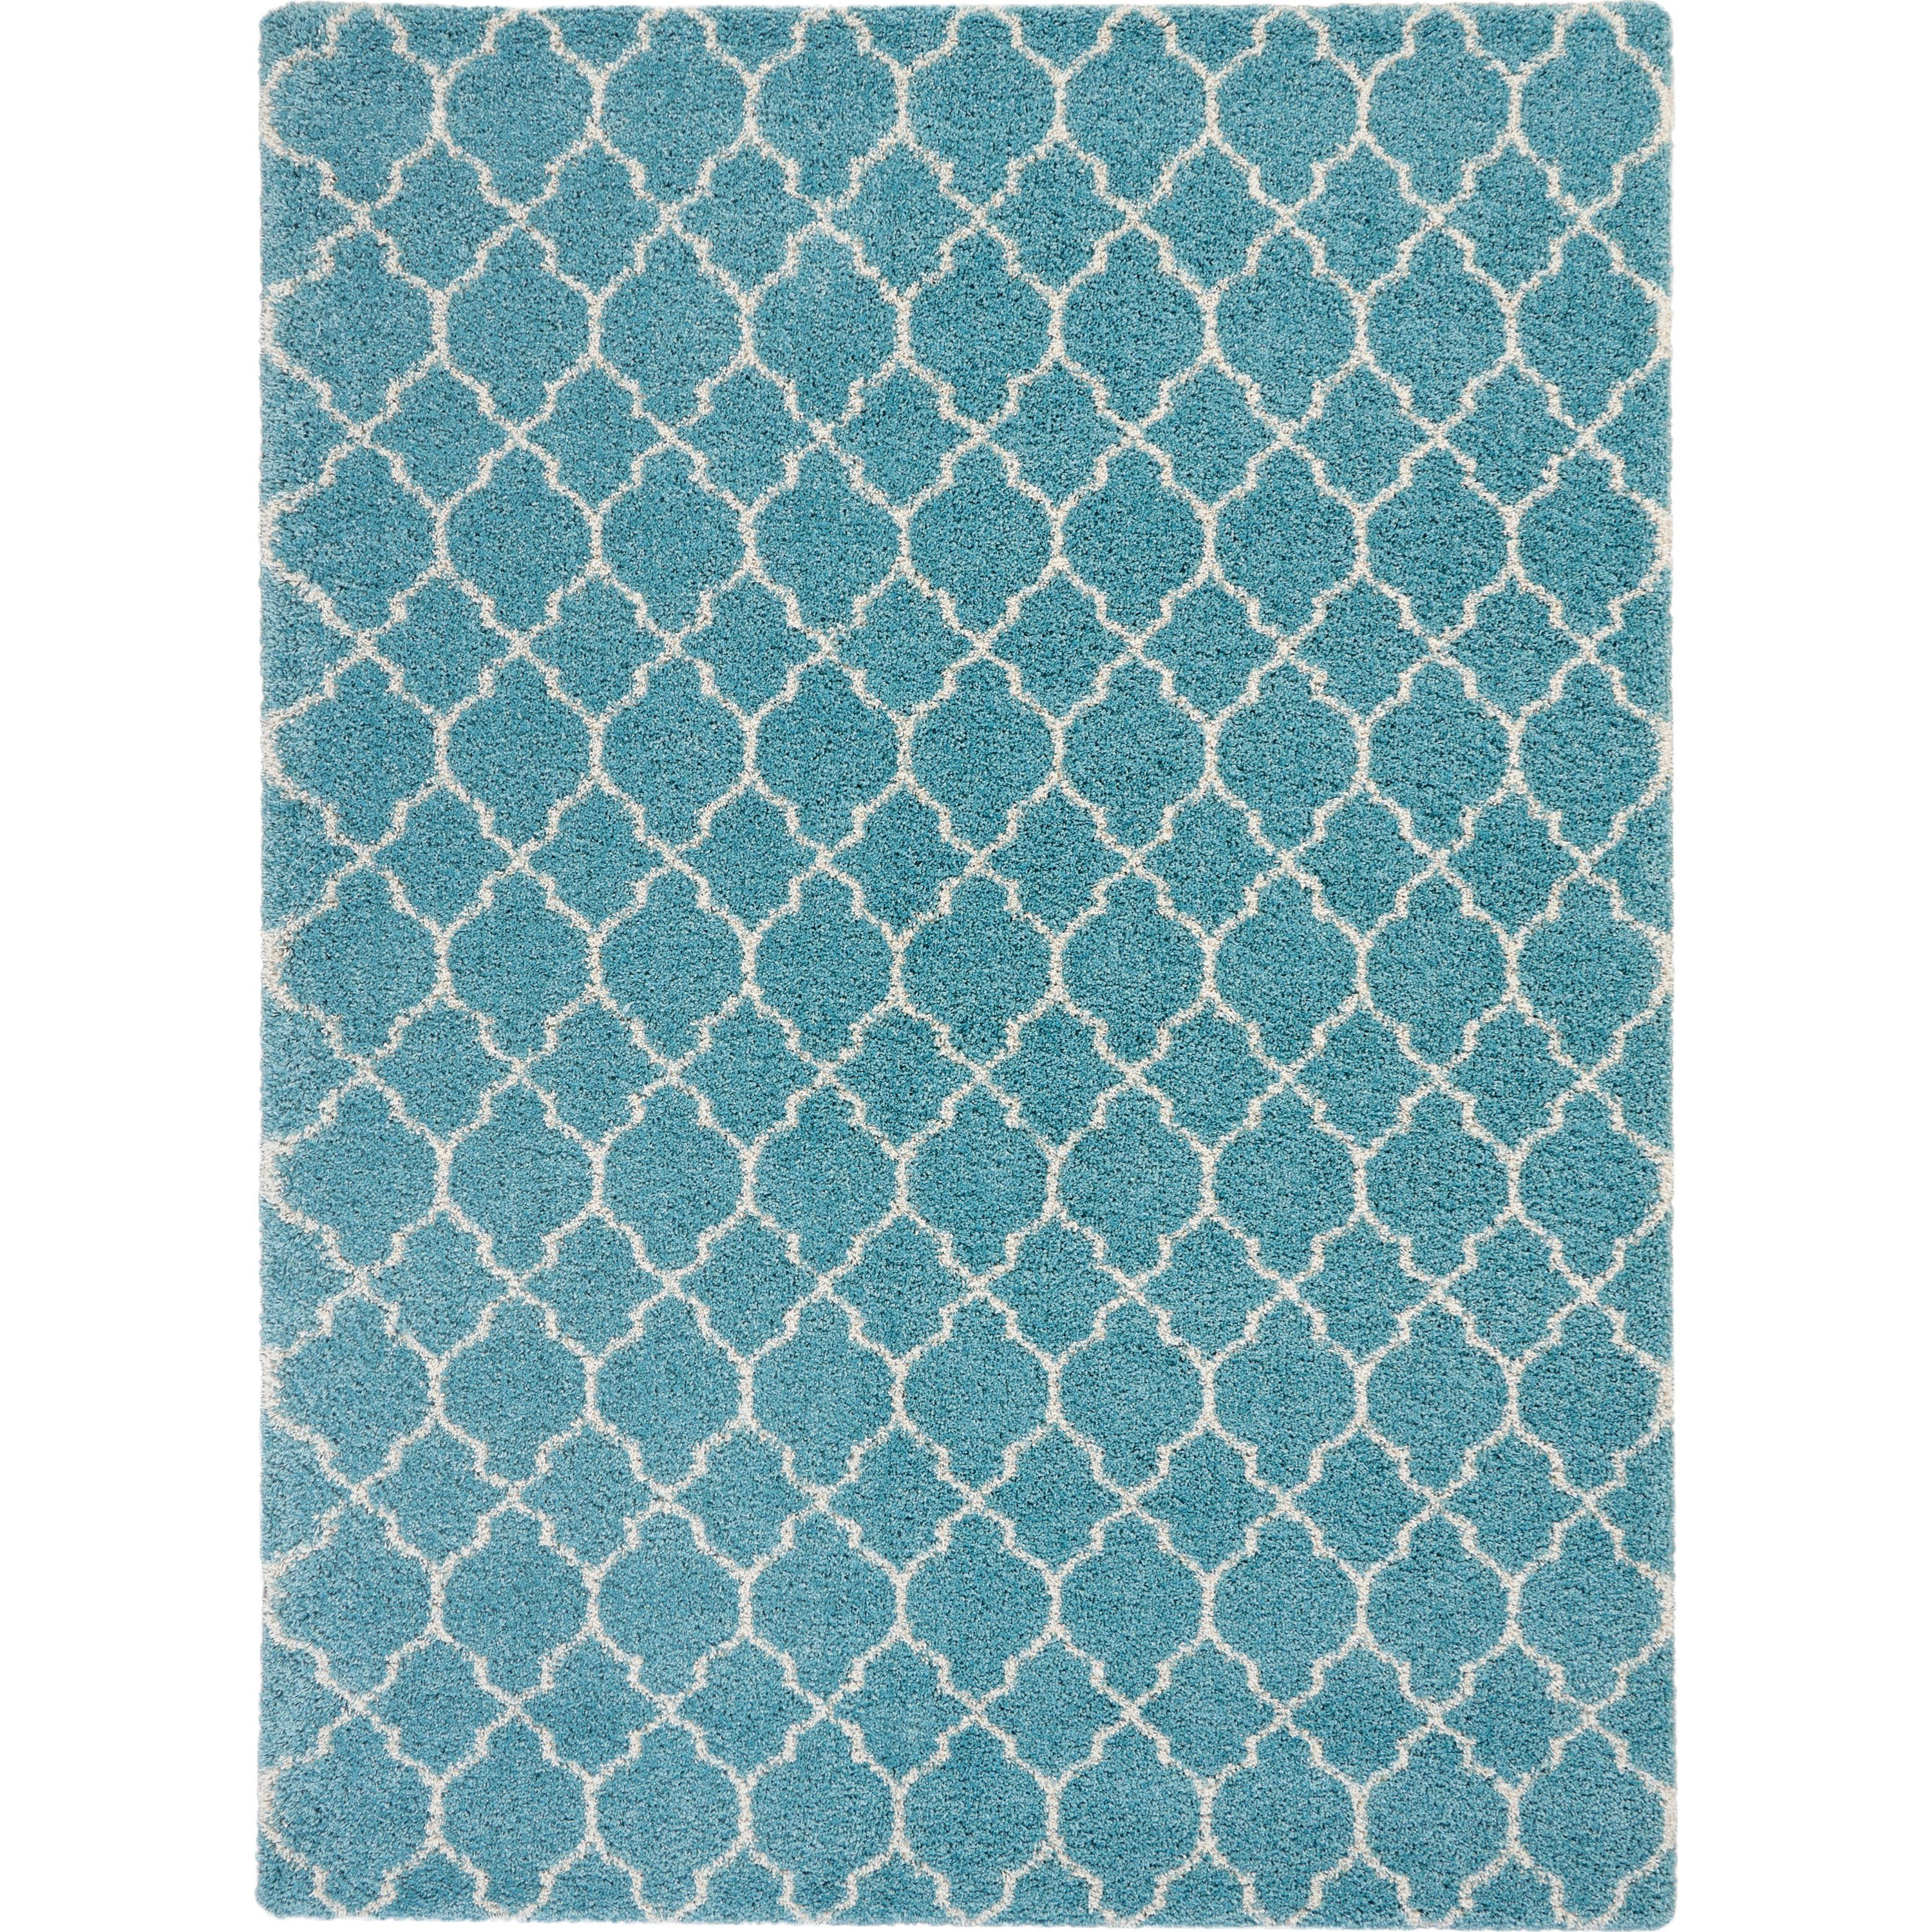 Amore Amore AMOR2 Blue 8'x11'   Rug by Nourison at Home Collections Furniture